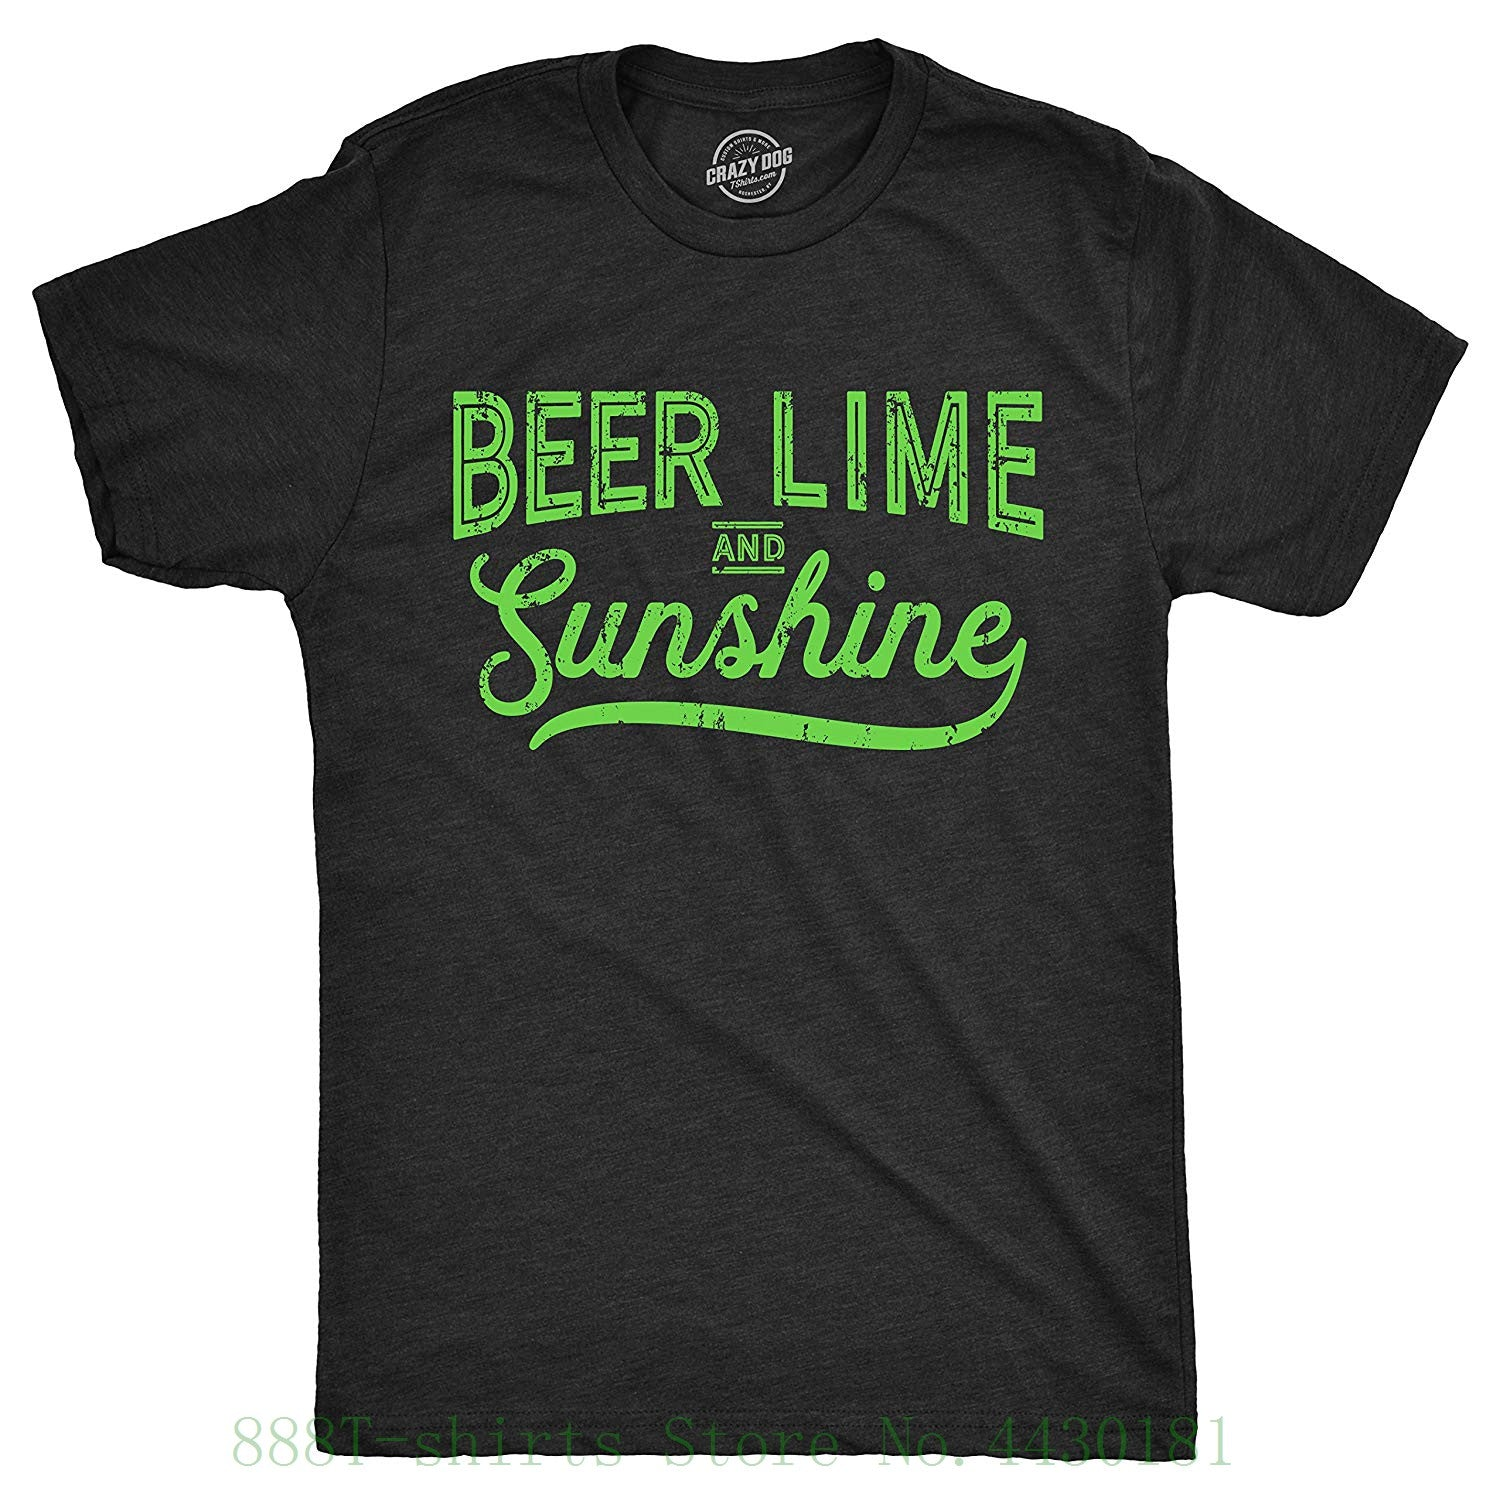 Tshirts Mens Beer Lime And Sunshine Tshirt Funny Cinco De Mayo Summer Bbq Tee For Guys - Homme Sleeve Harajuku Tops